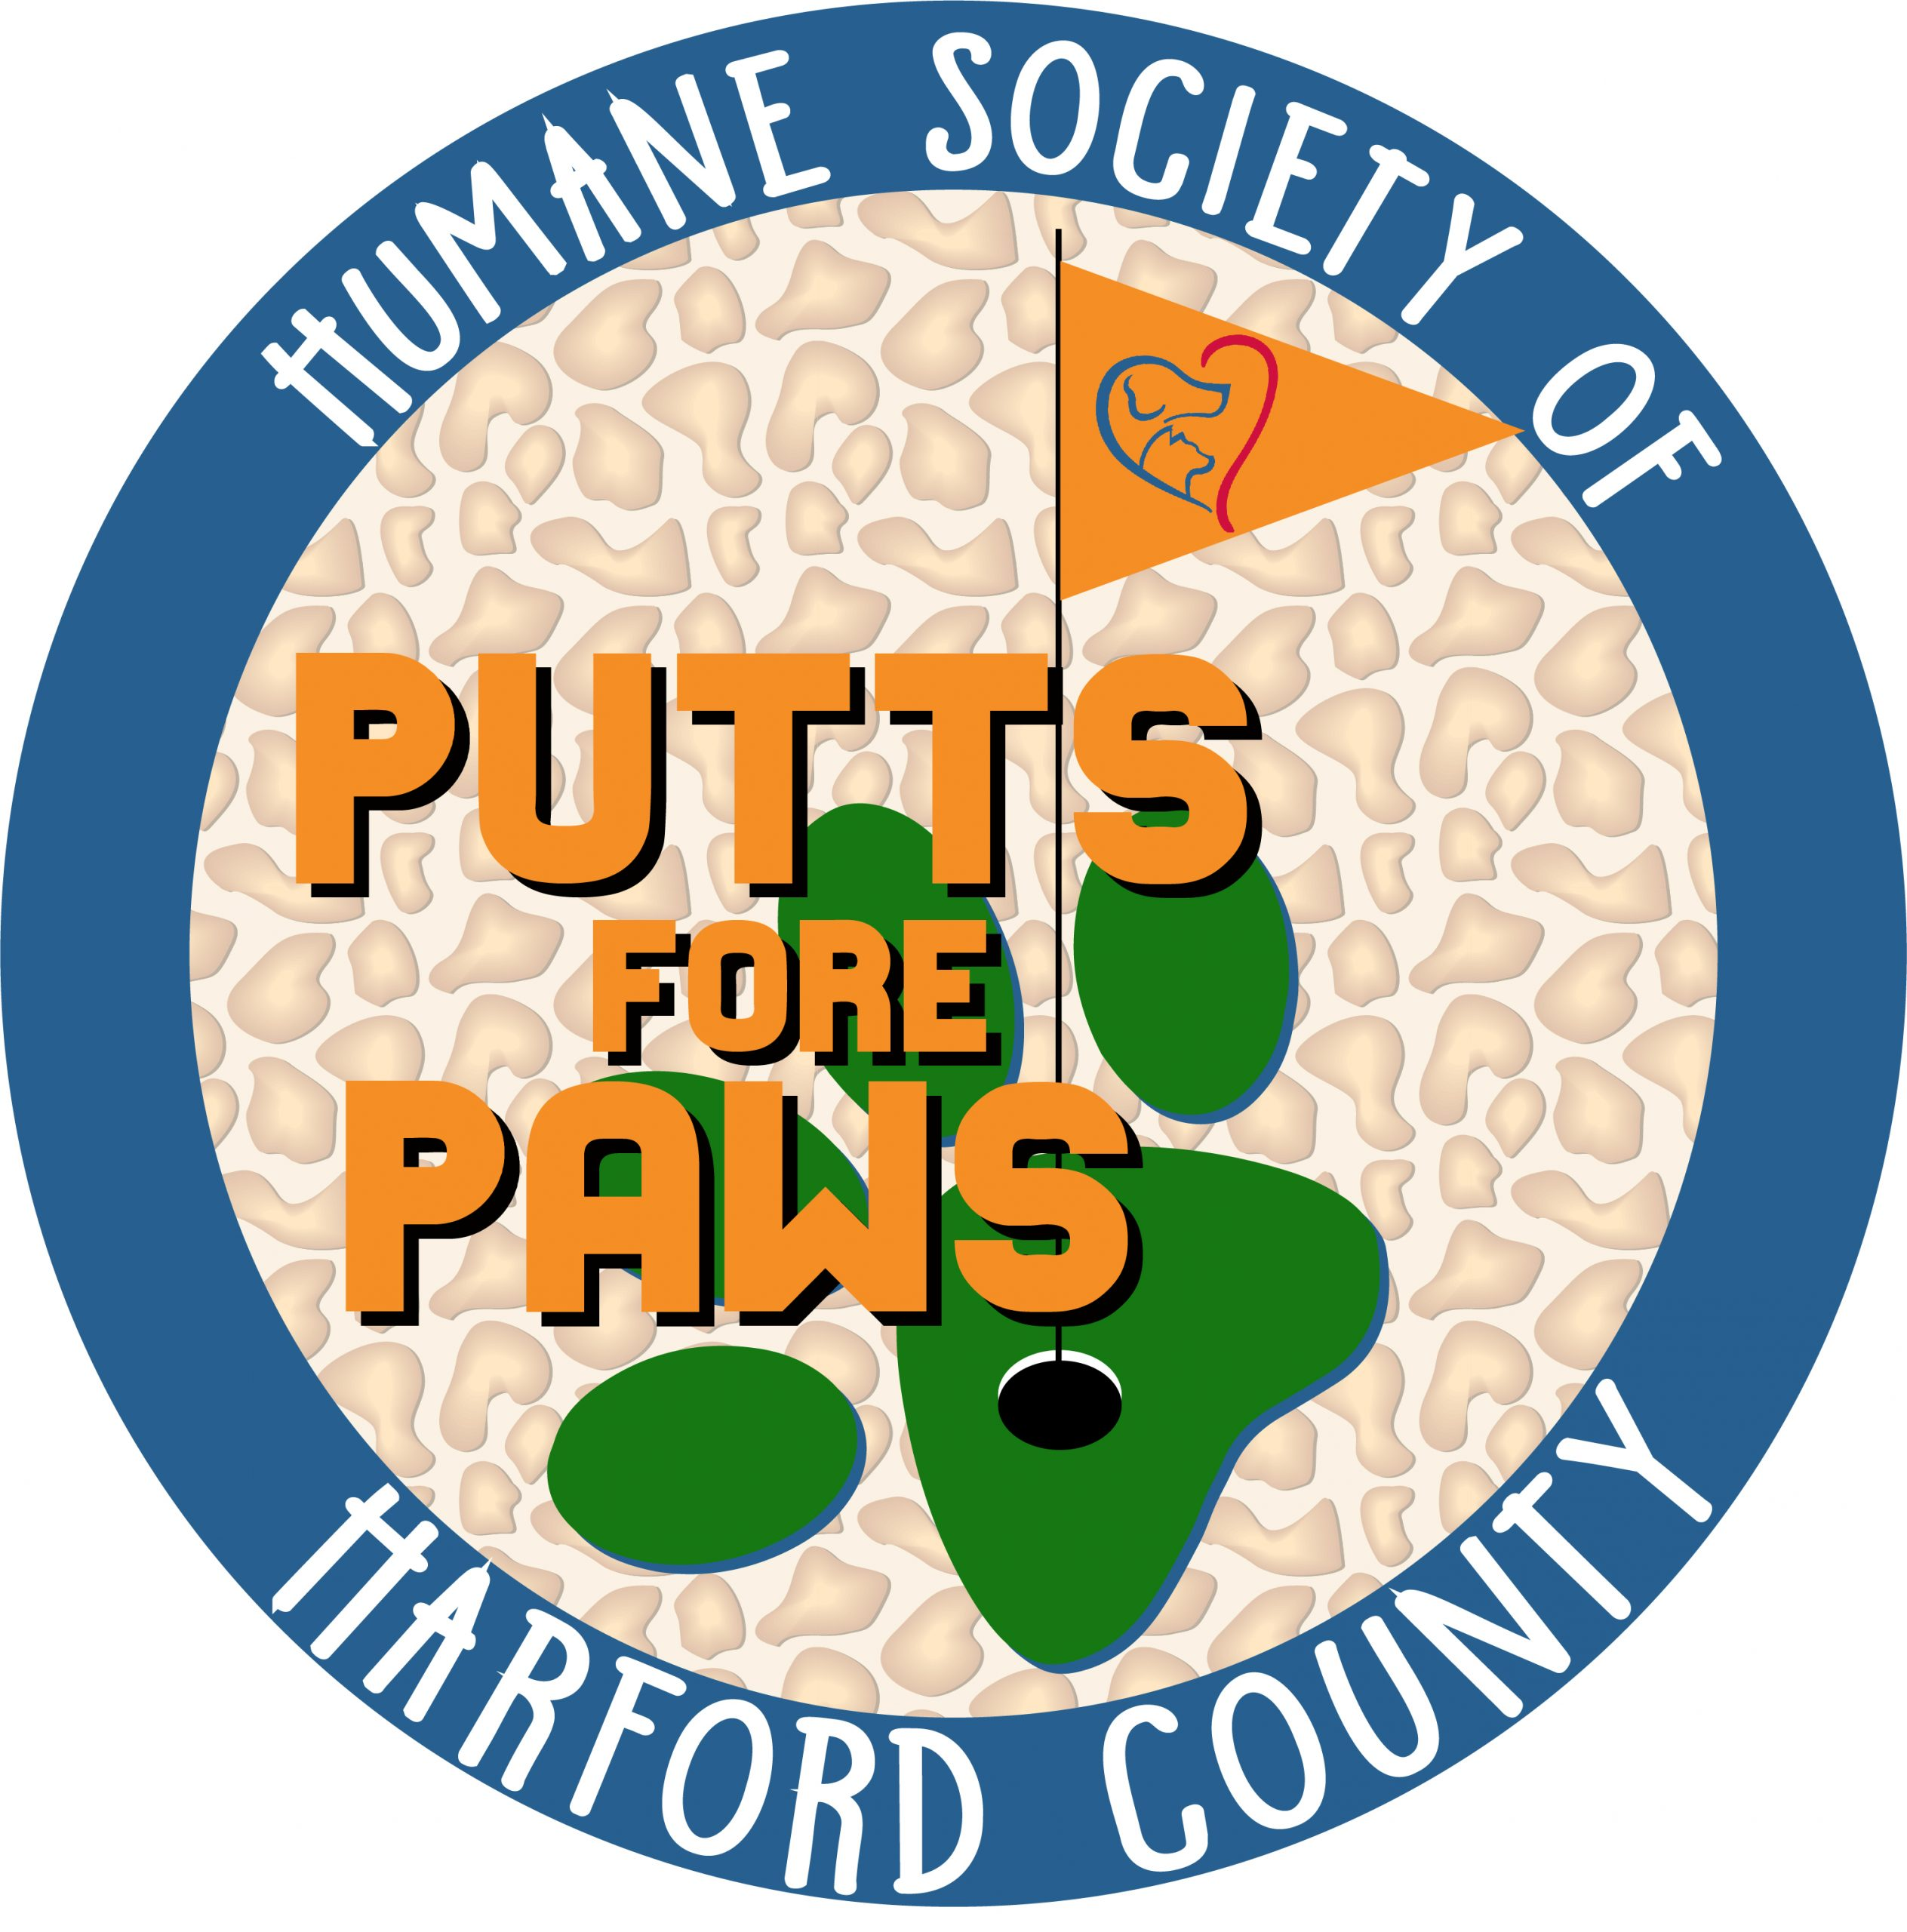 Humane Society of Harford County's 6th Annual Golf Tournament Set for Thursday, September 3